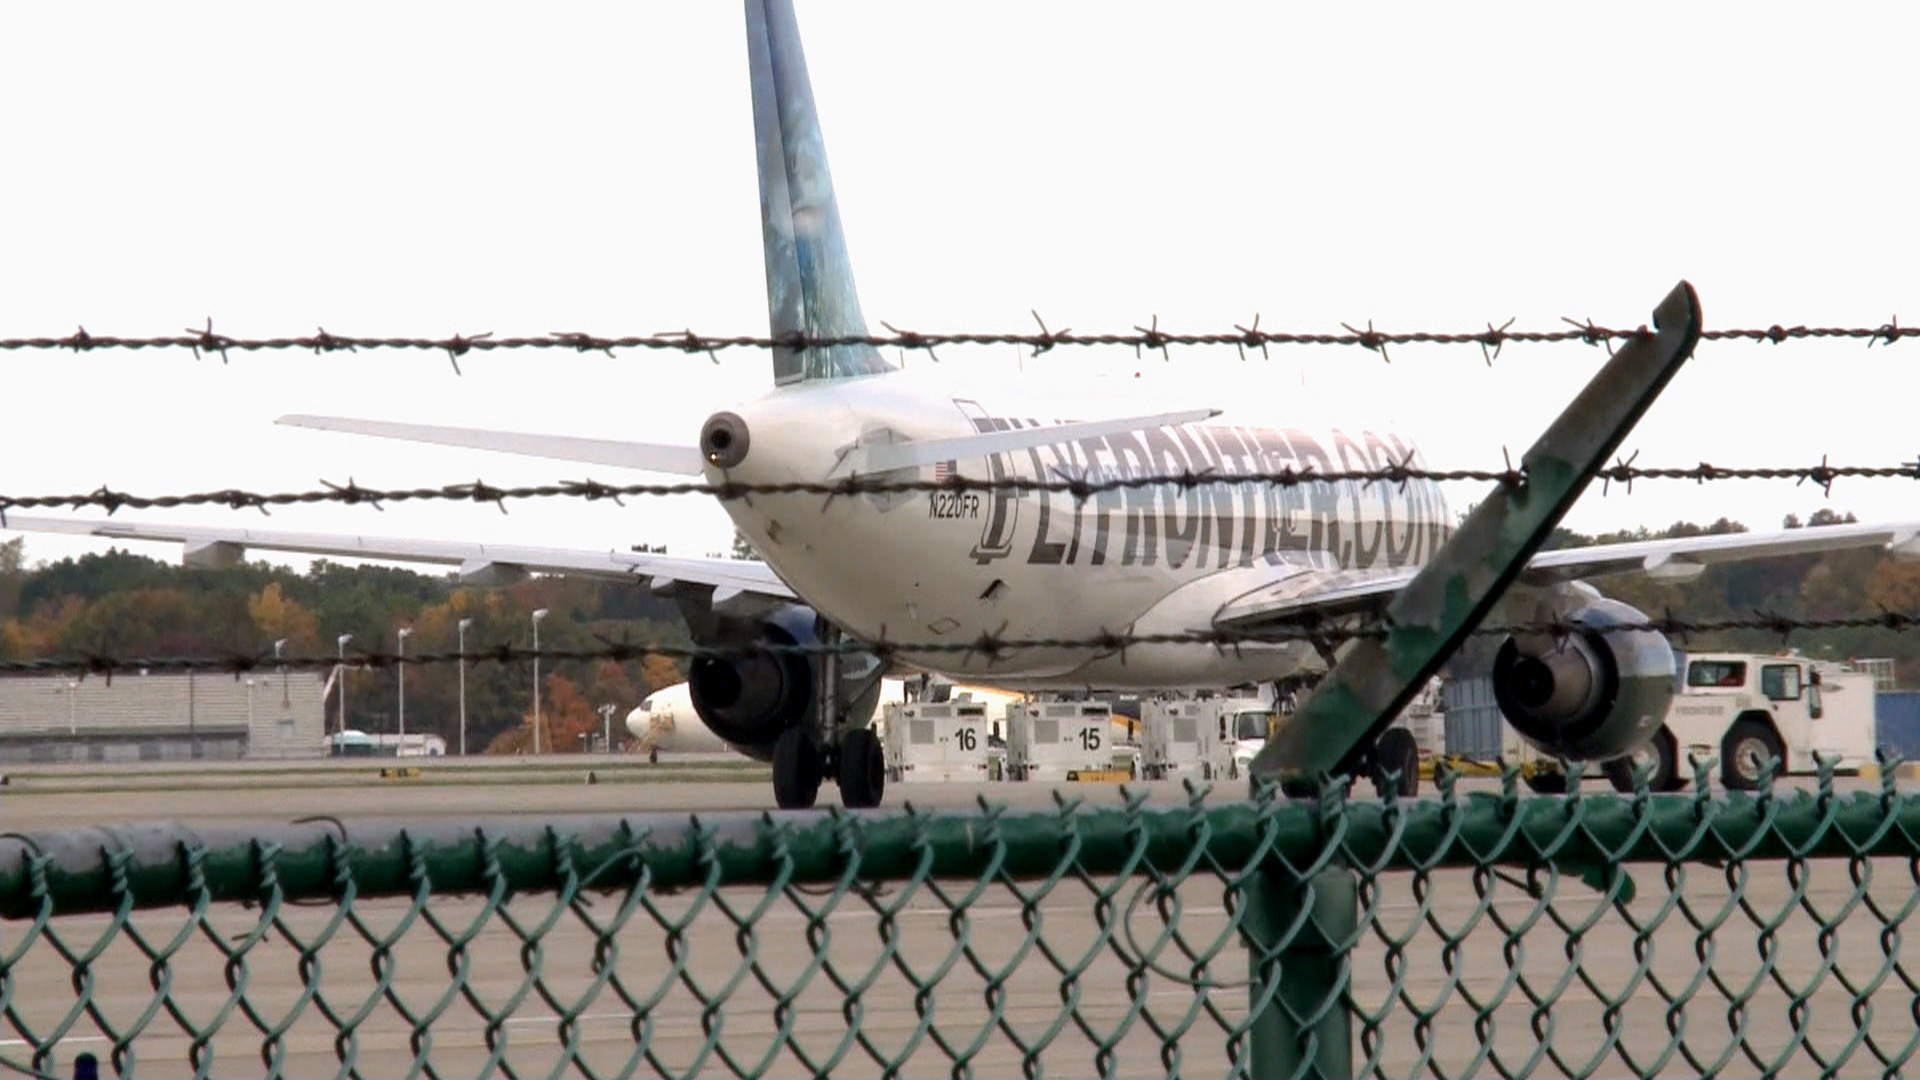 Ebola patient called CDC before flight